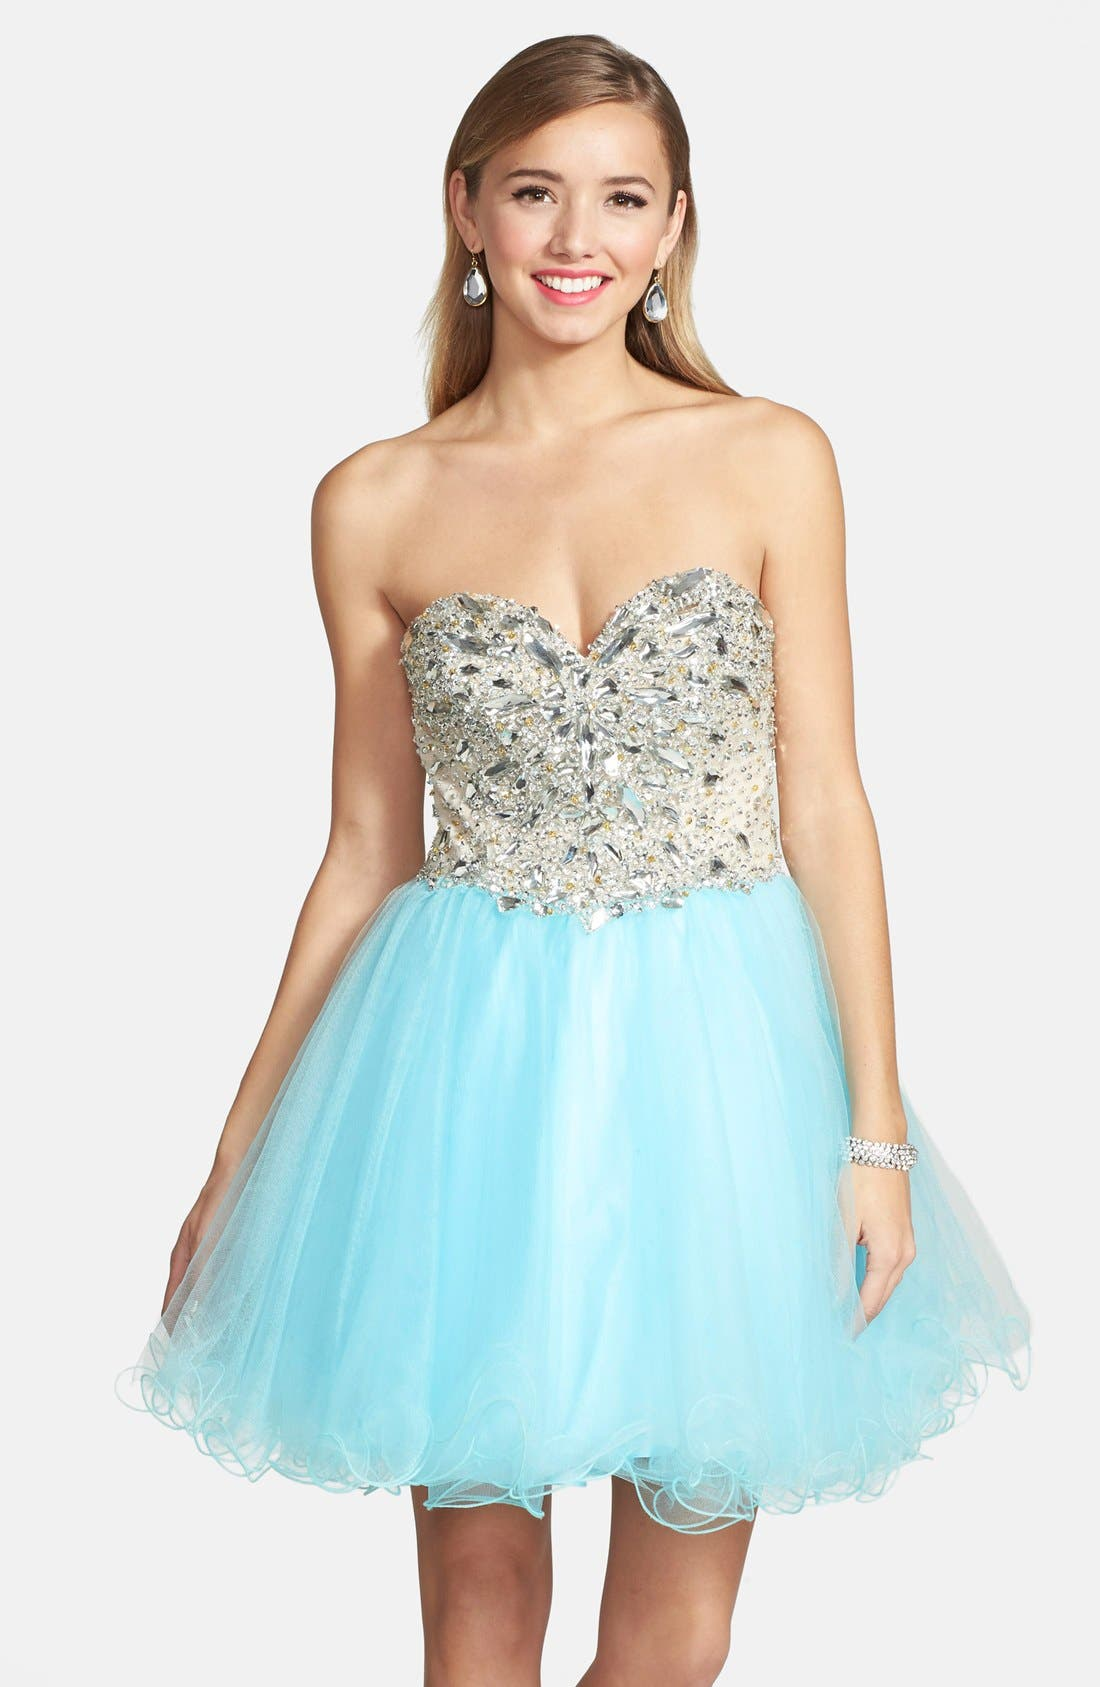 Alternate Image 1 Selected - Terani Couture Embellished Tulle Strapless Fit & Flare Dress